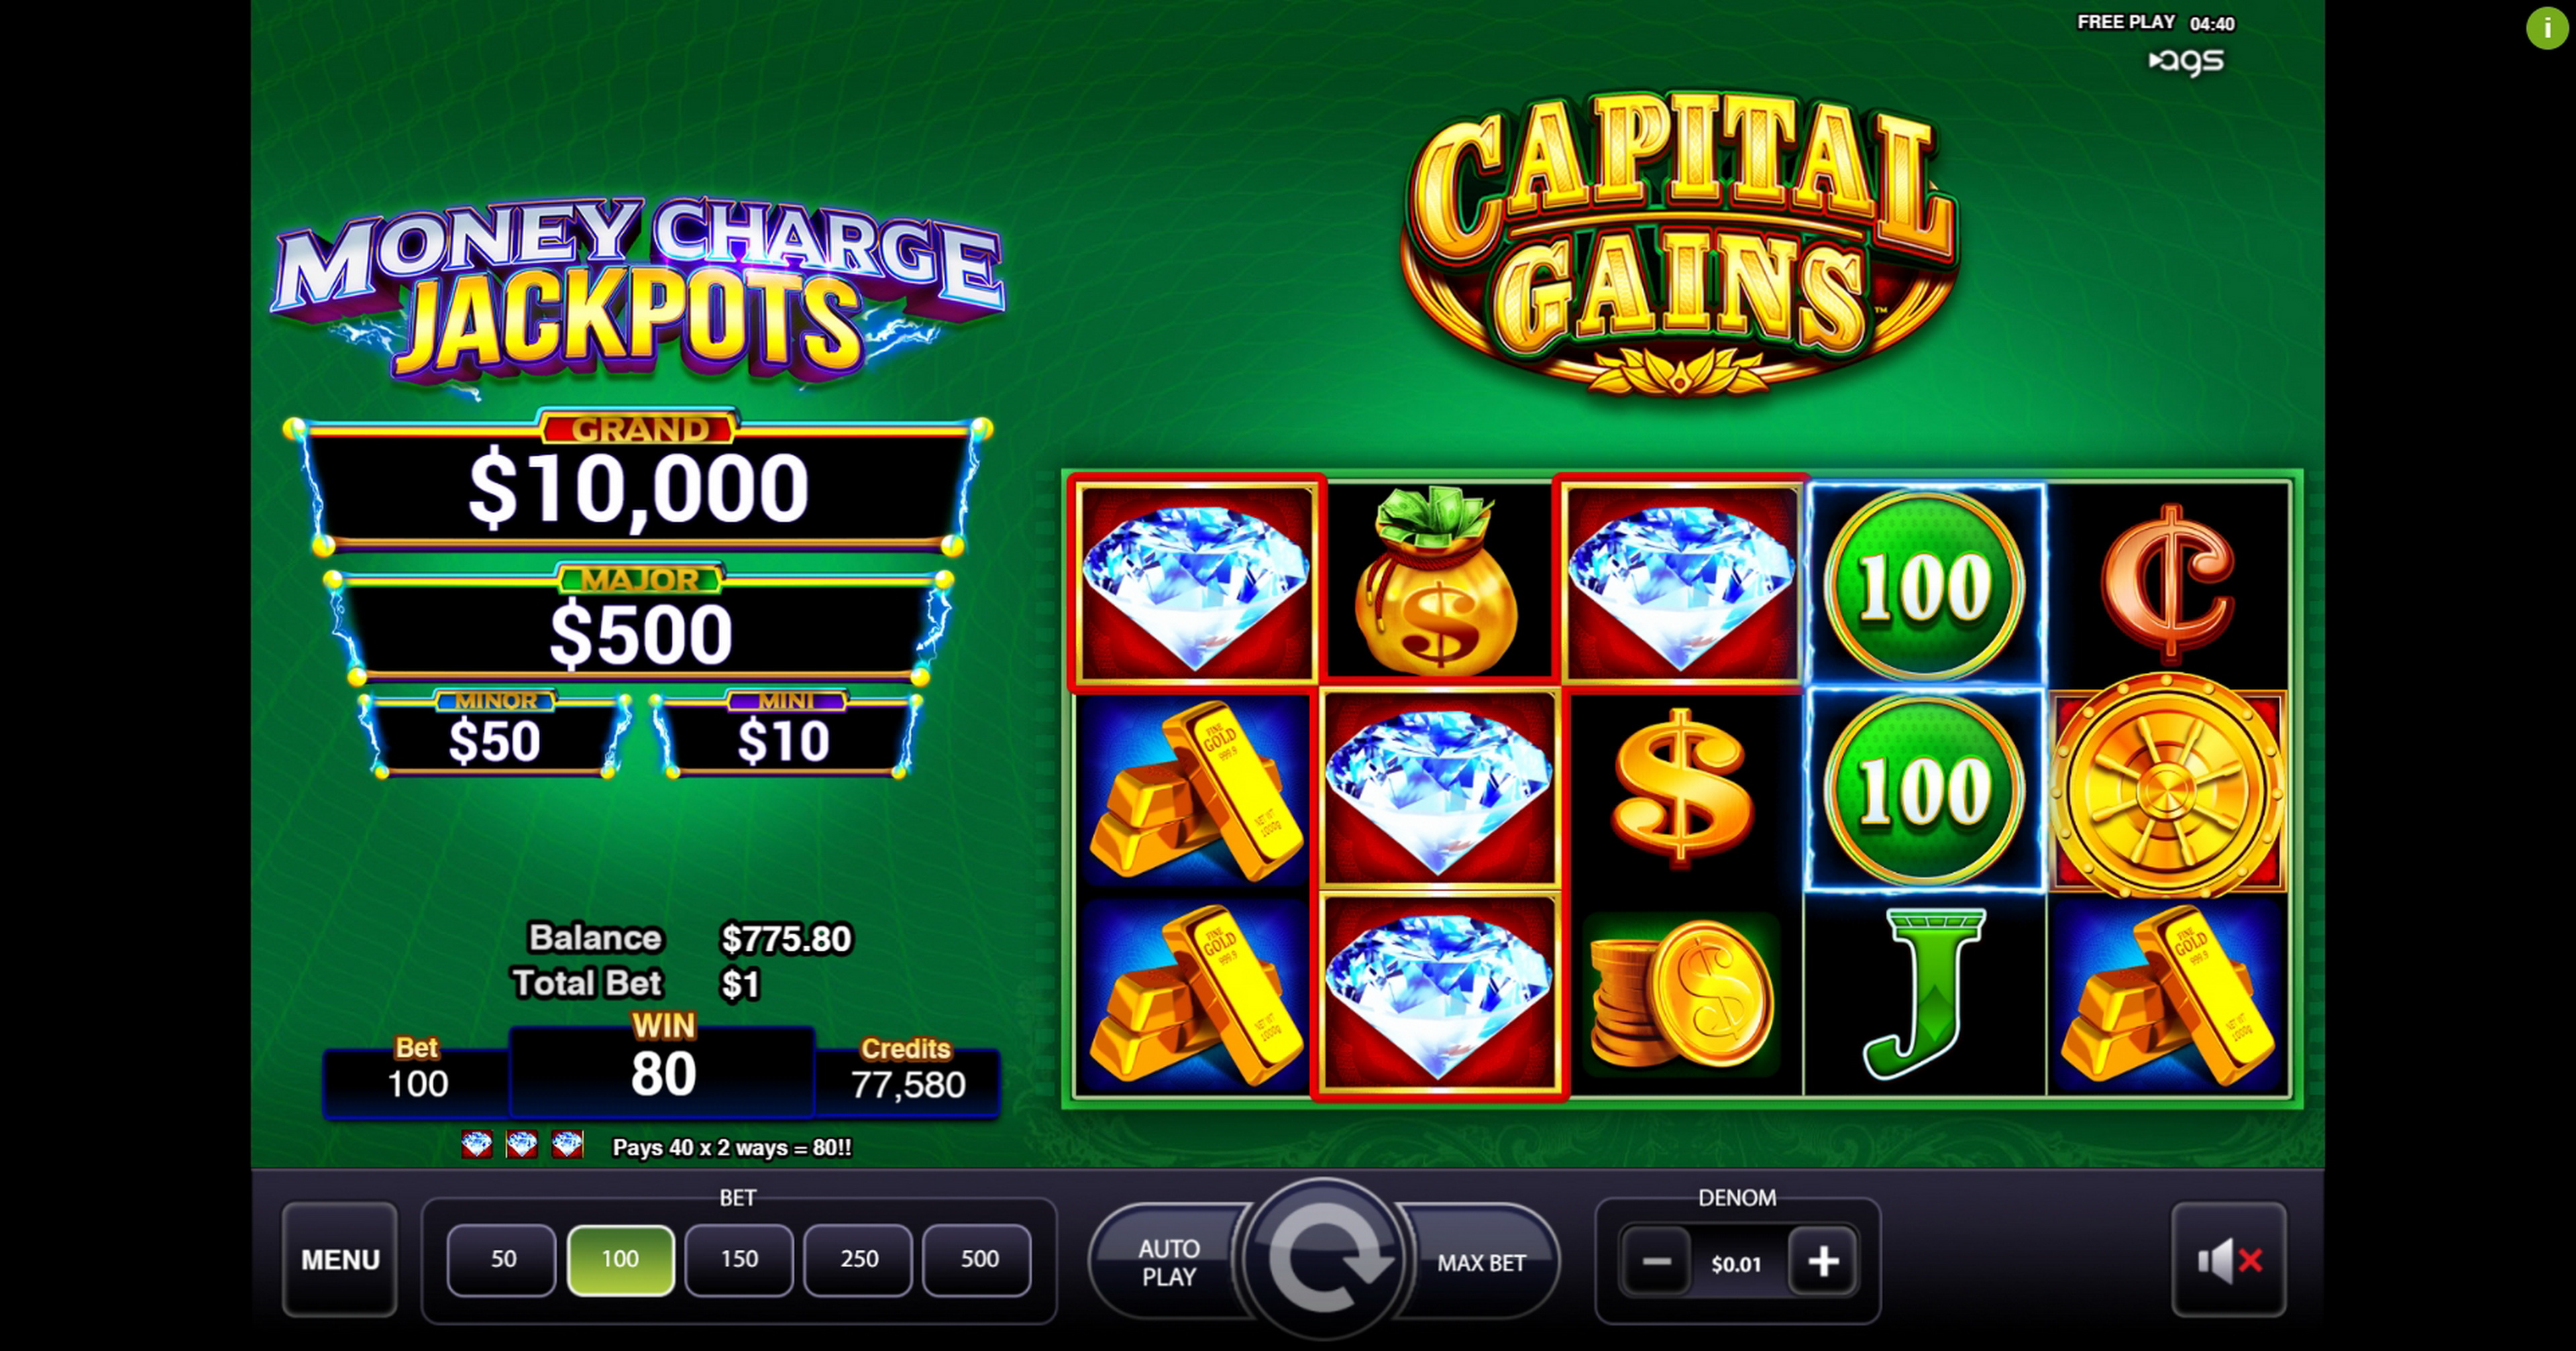 Win Money in Capital Gains Free Slot Game by AGS